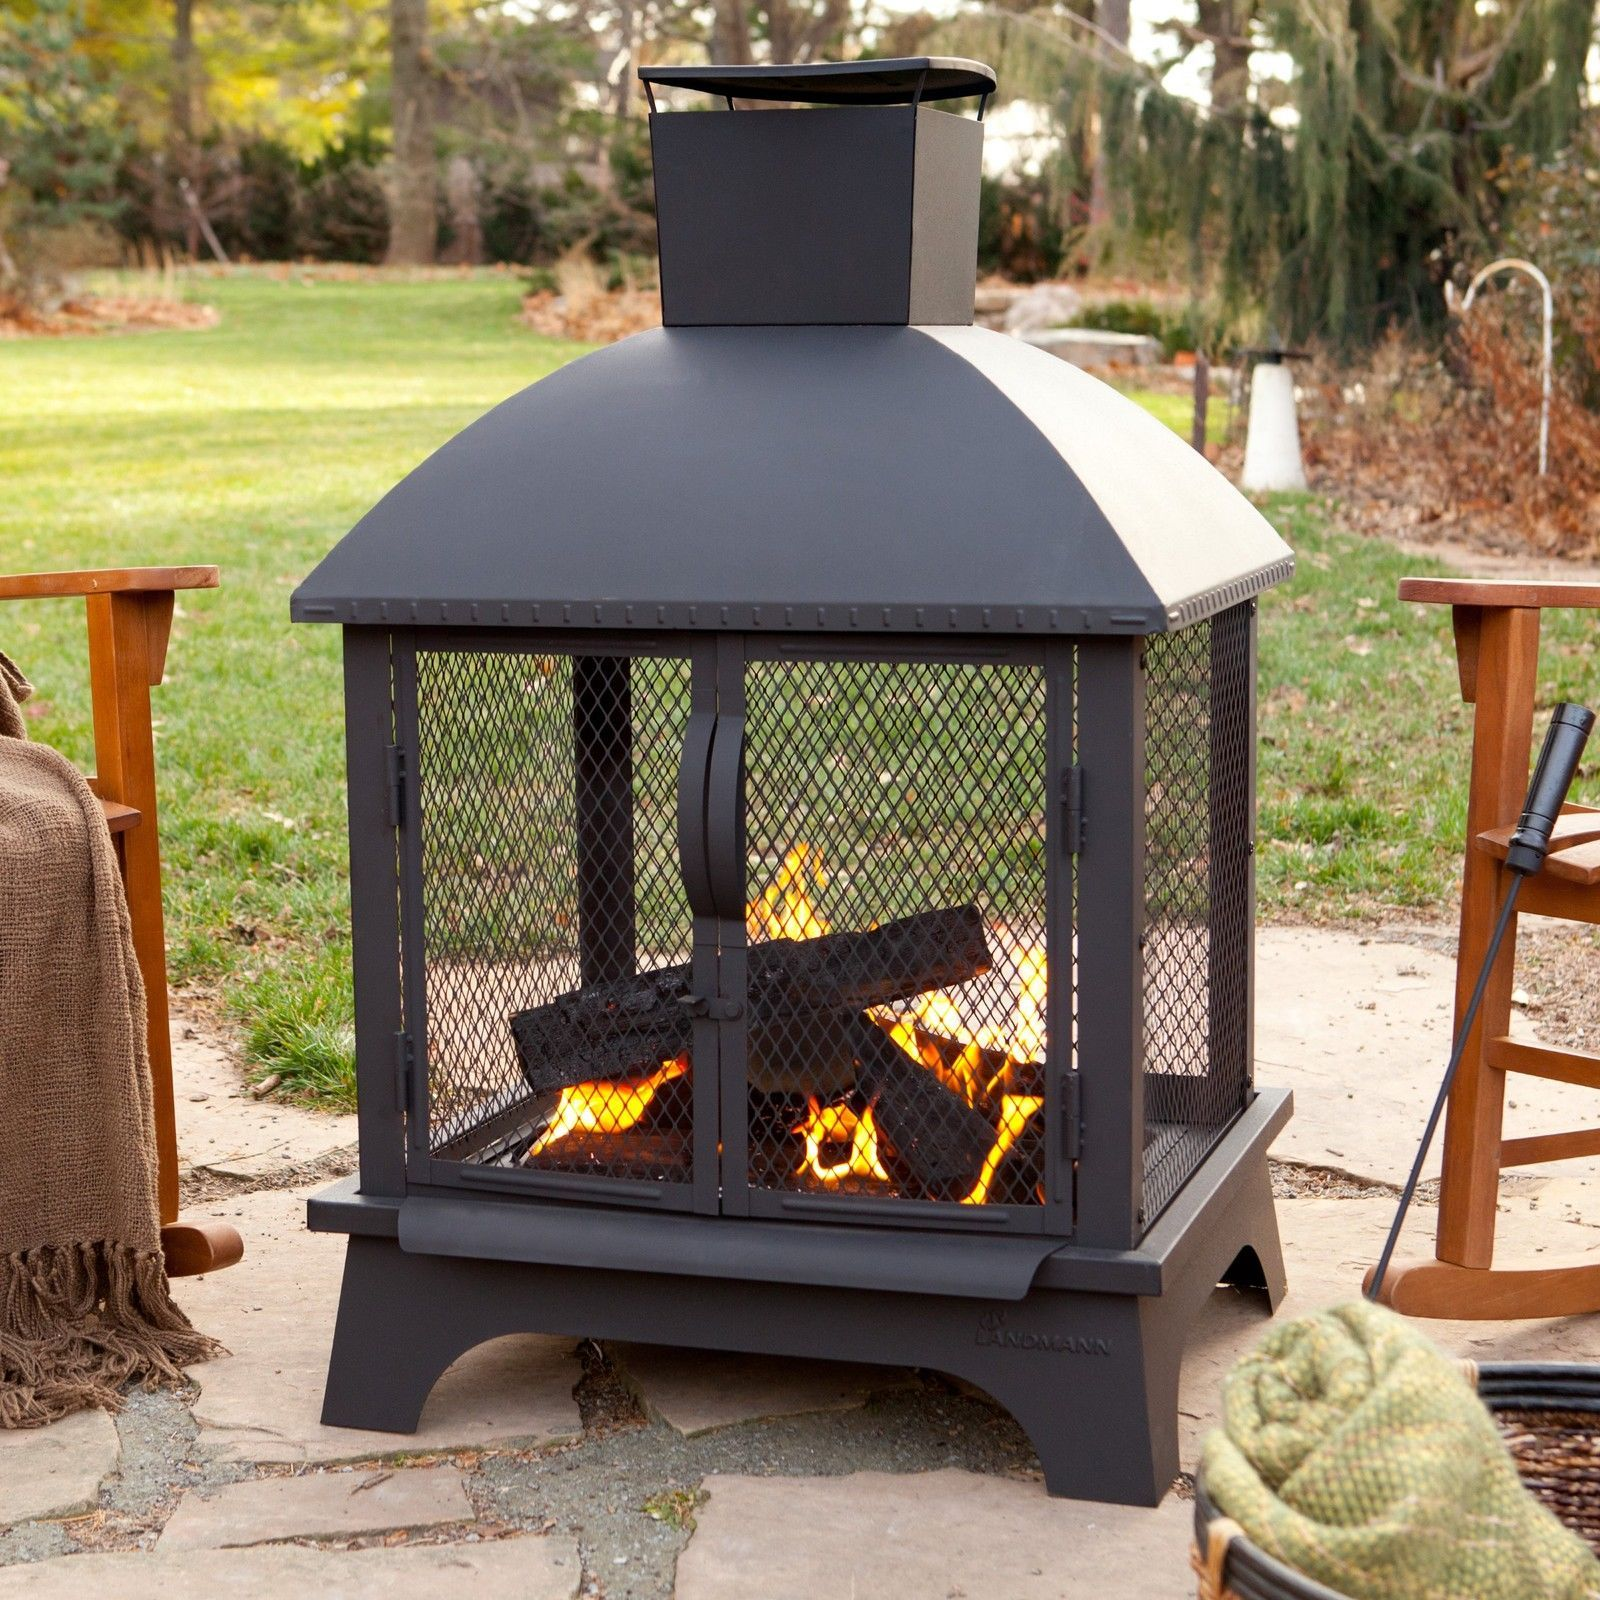 Benefits Wood Burning Chiminea Fire Pit Garden Landscape